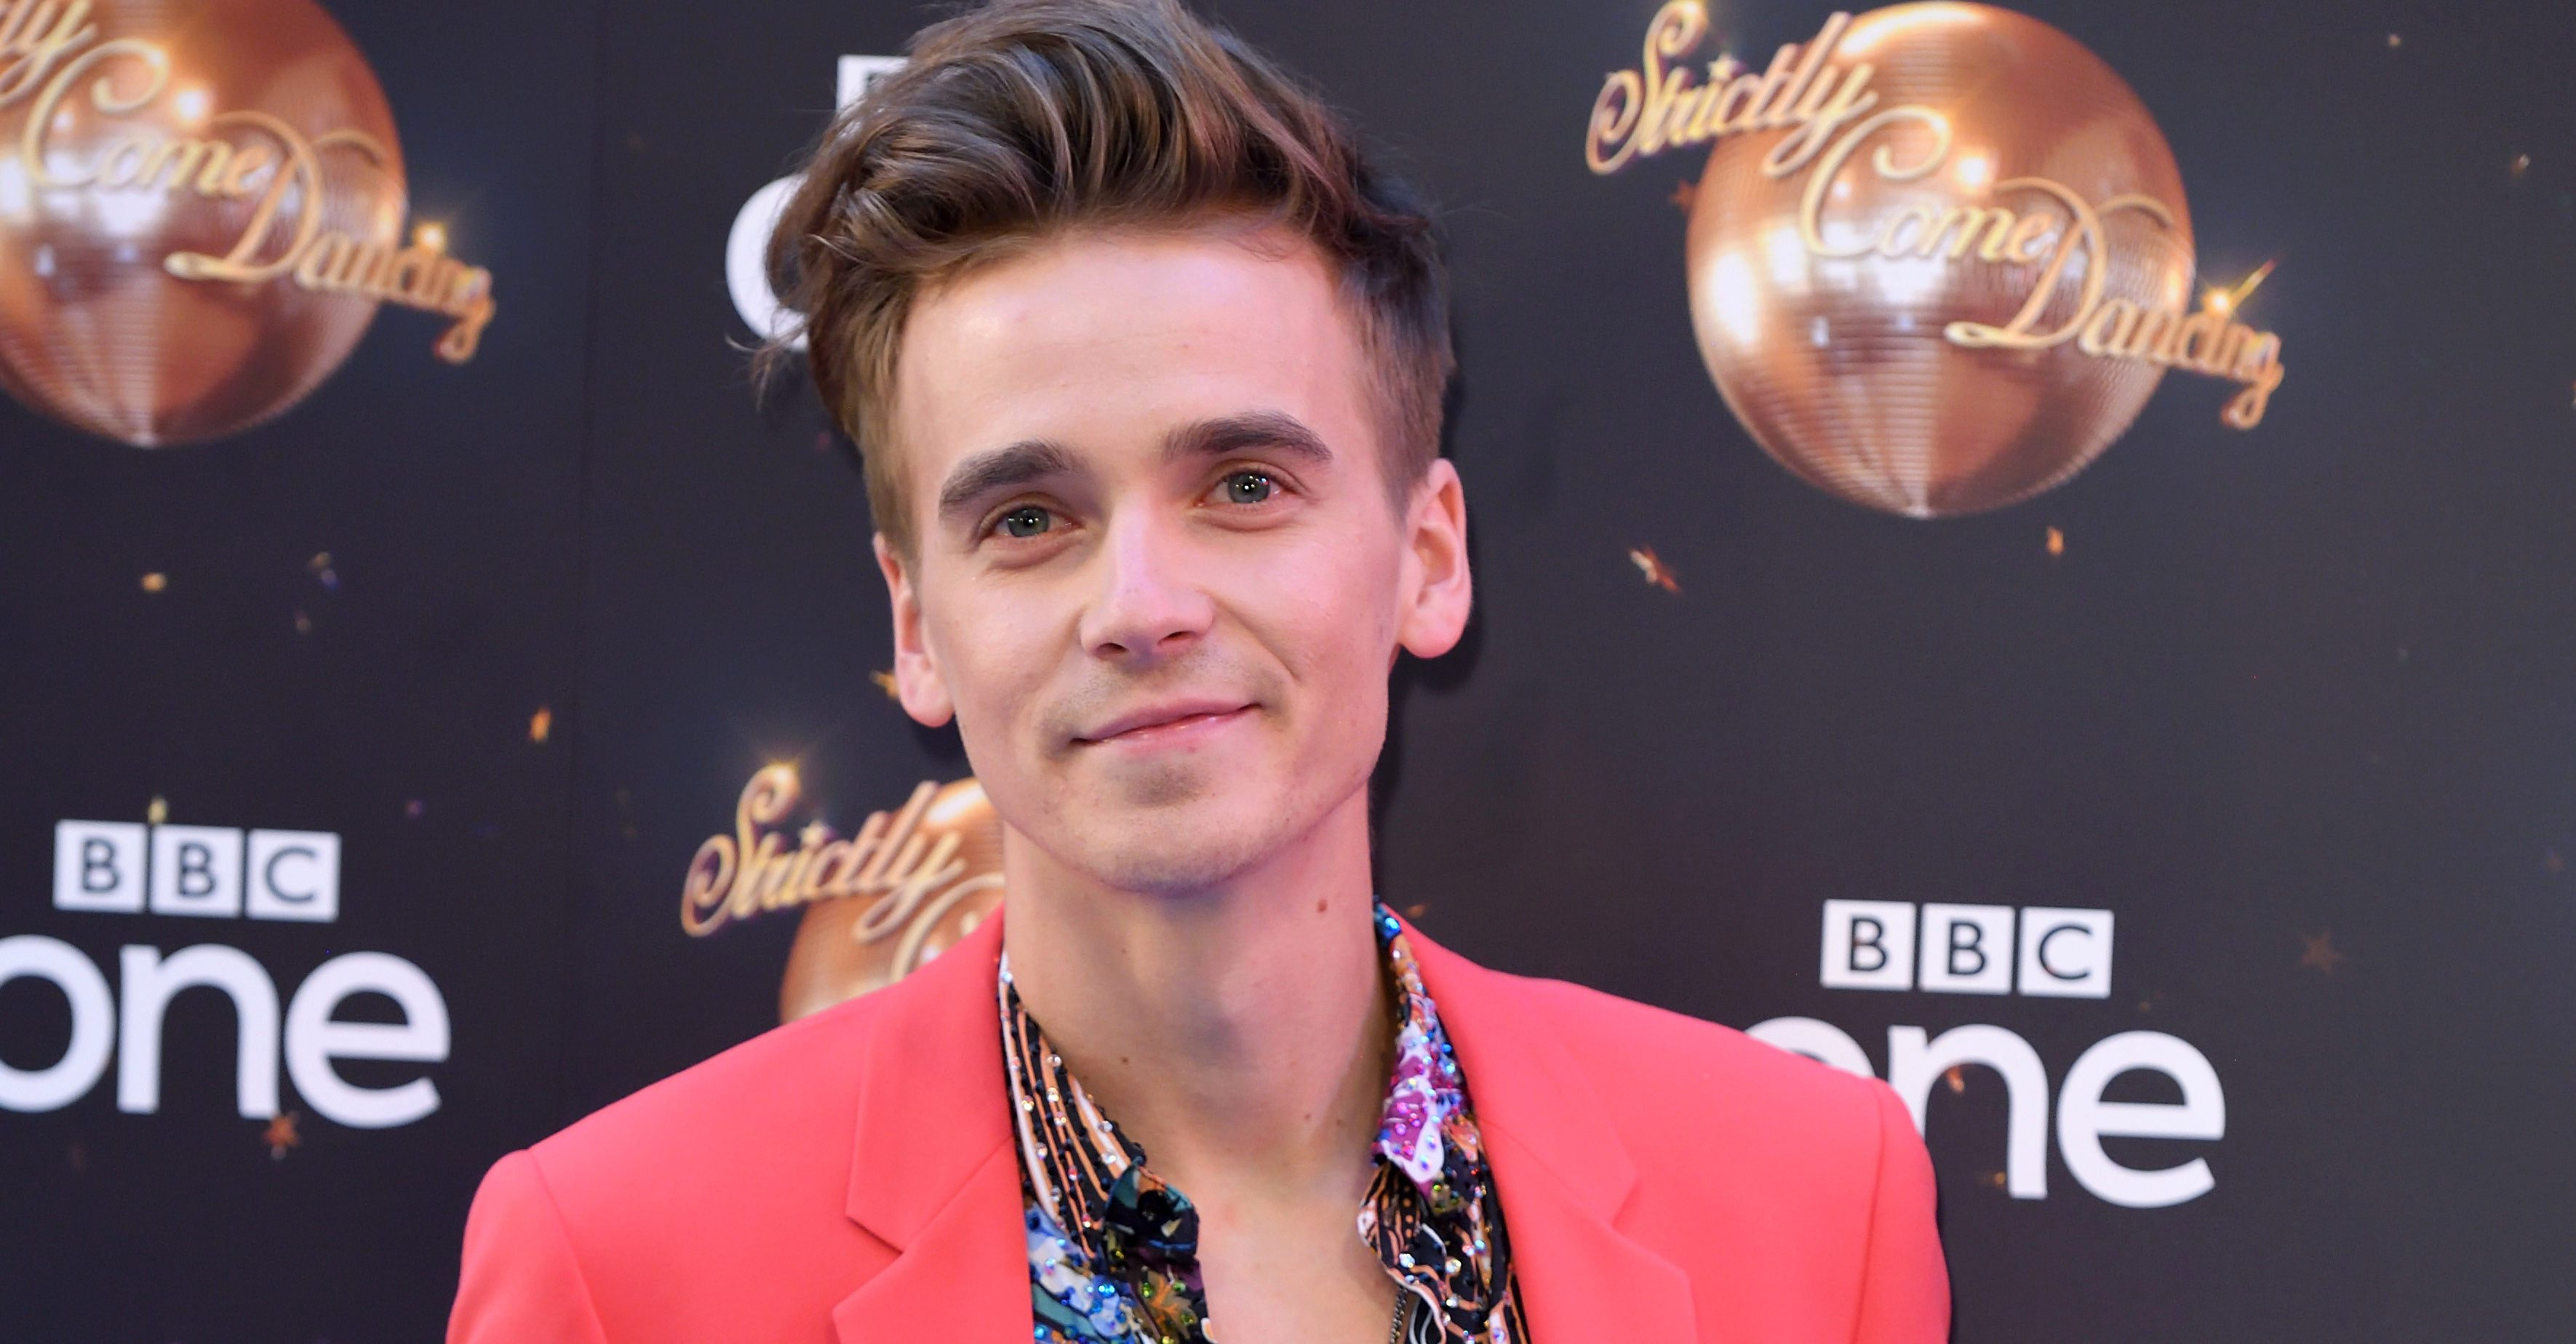 Strictly Come Dancing's Joe Sugg shares sweet throwback as BBC extra and look how far he's come